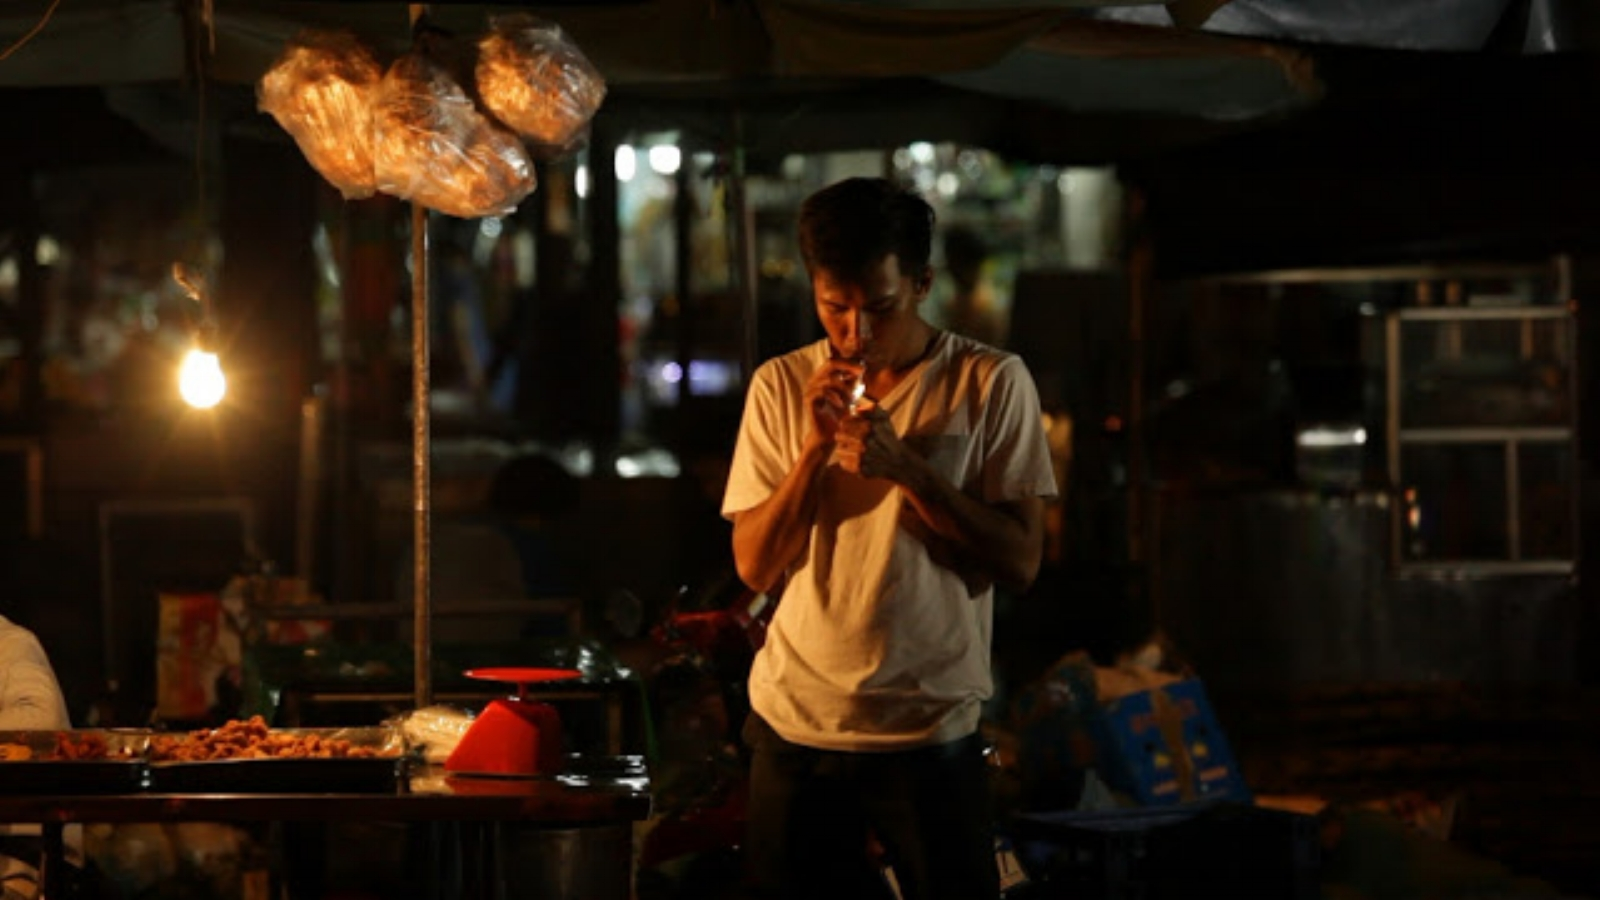 Kavich Neang /Cambodia / 2015 / Kher / 16min   Hidden in a hotel in the capital city of Phnom Penh, a young couple spends their final days together before the girl returns to her home country.    Director:  Kavich Neang studied Cambodian music and dance at Cambodian Living Arts from 2002 to 2009. He graduated from Limkokwing University in 2013, majoring in graphic design.  In 2010, he made a short documentary film A Scale Boy while attending a documentary film workshop led by Rithy Panh, the internationally acclaimed Cambodian documentary filmmaker. In 2013, he joined the Busan International Film Festival's Asian Film Academy as the programme's first Cambodian filmmaker